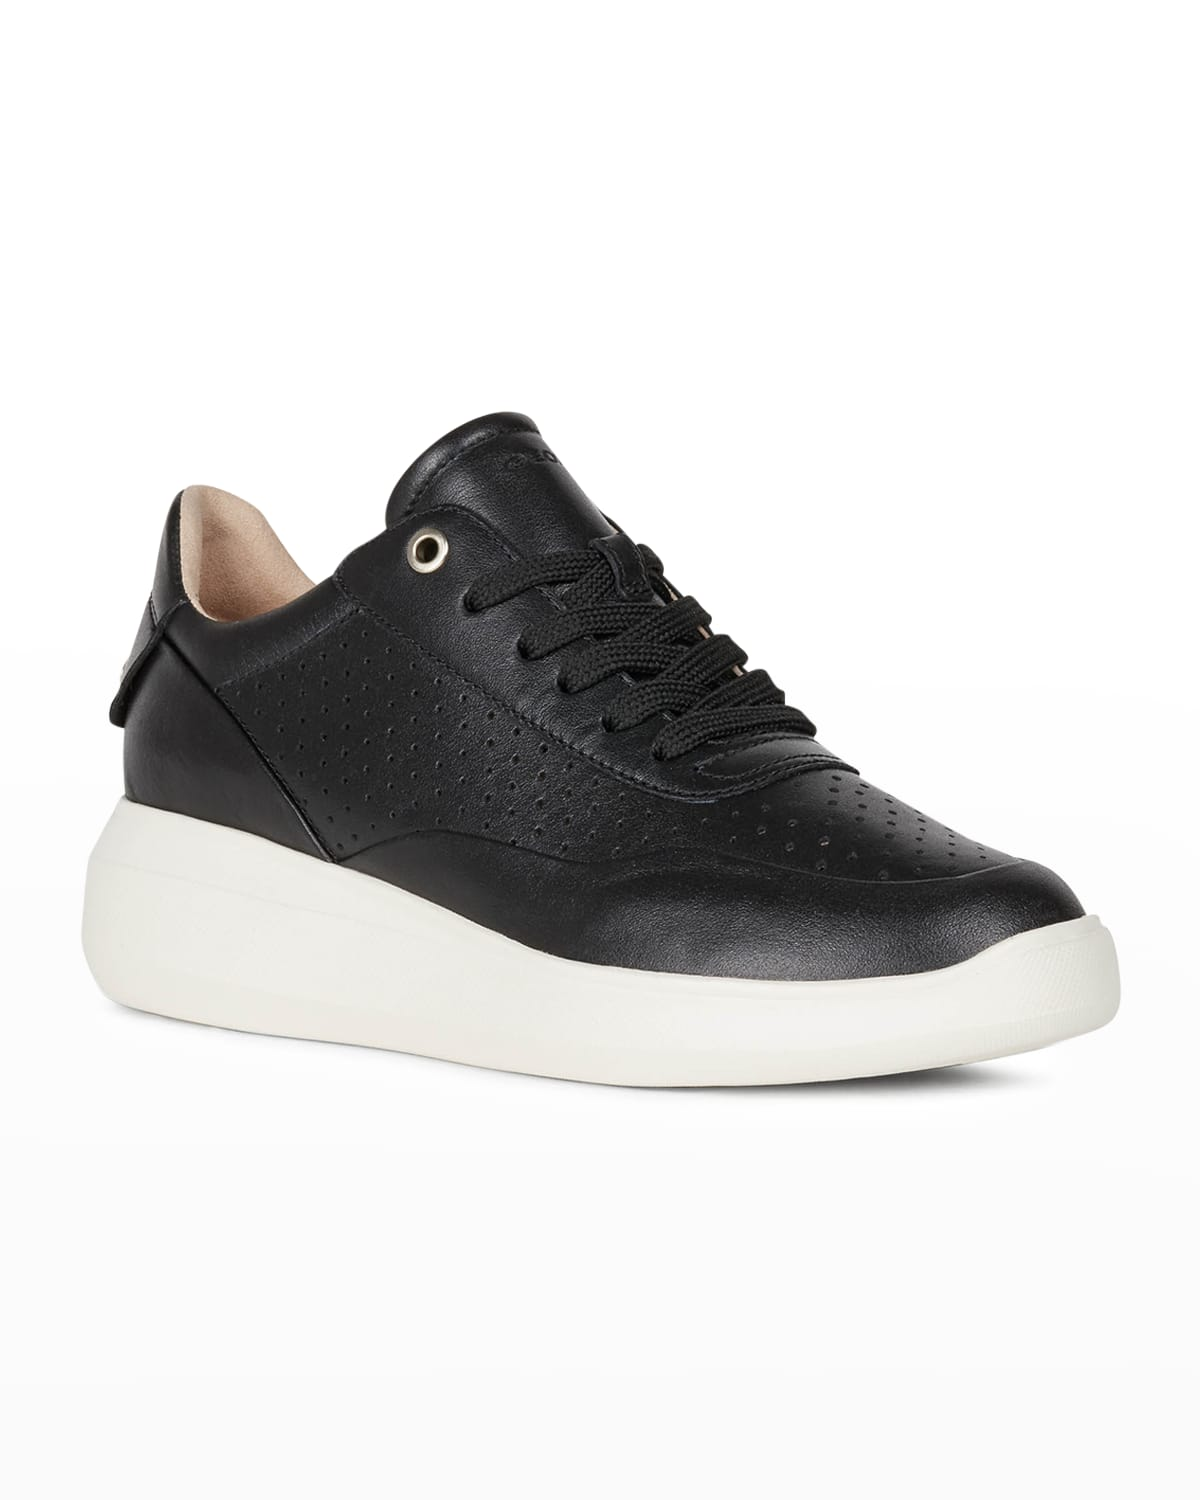 Rubidia Perforated Leather Low-Top Sneakers